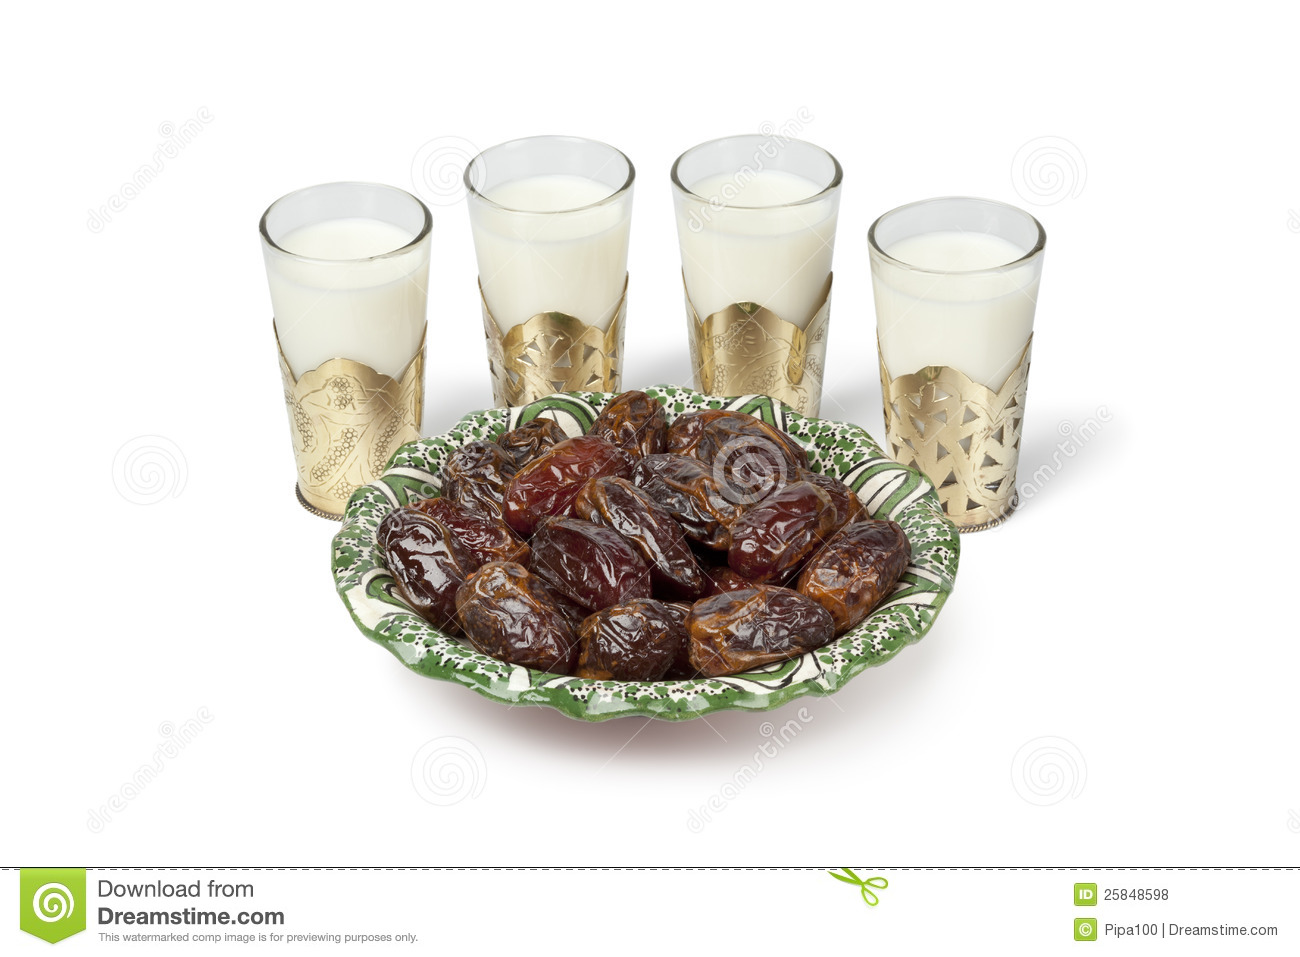 Milk And Dates For Iftar Meal Stock Photo - Image: 25848598